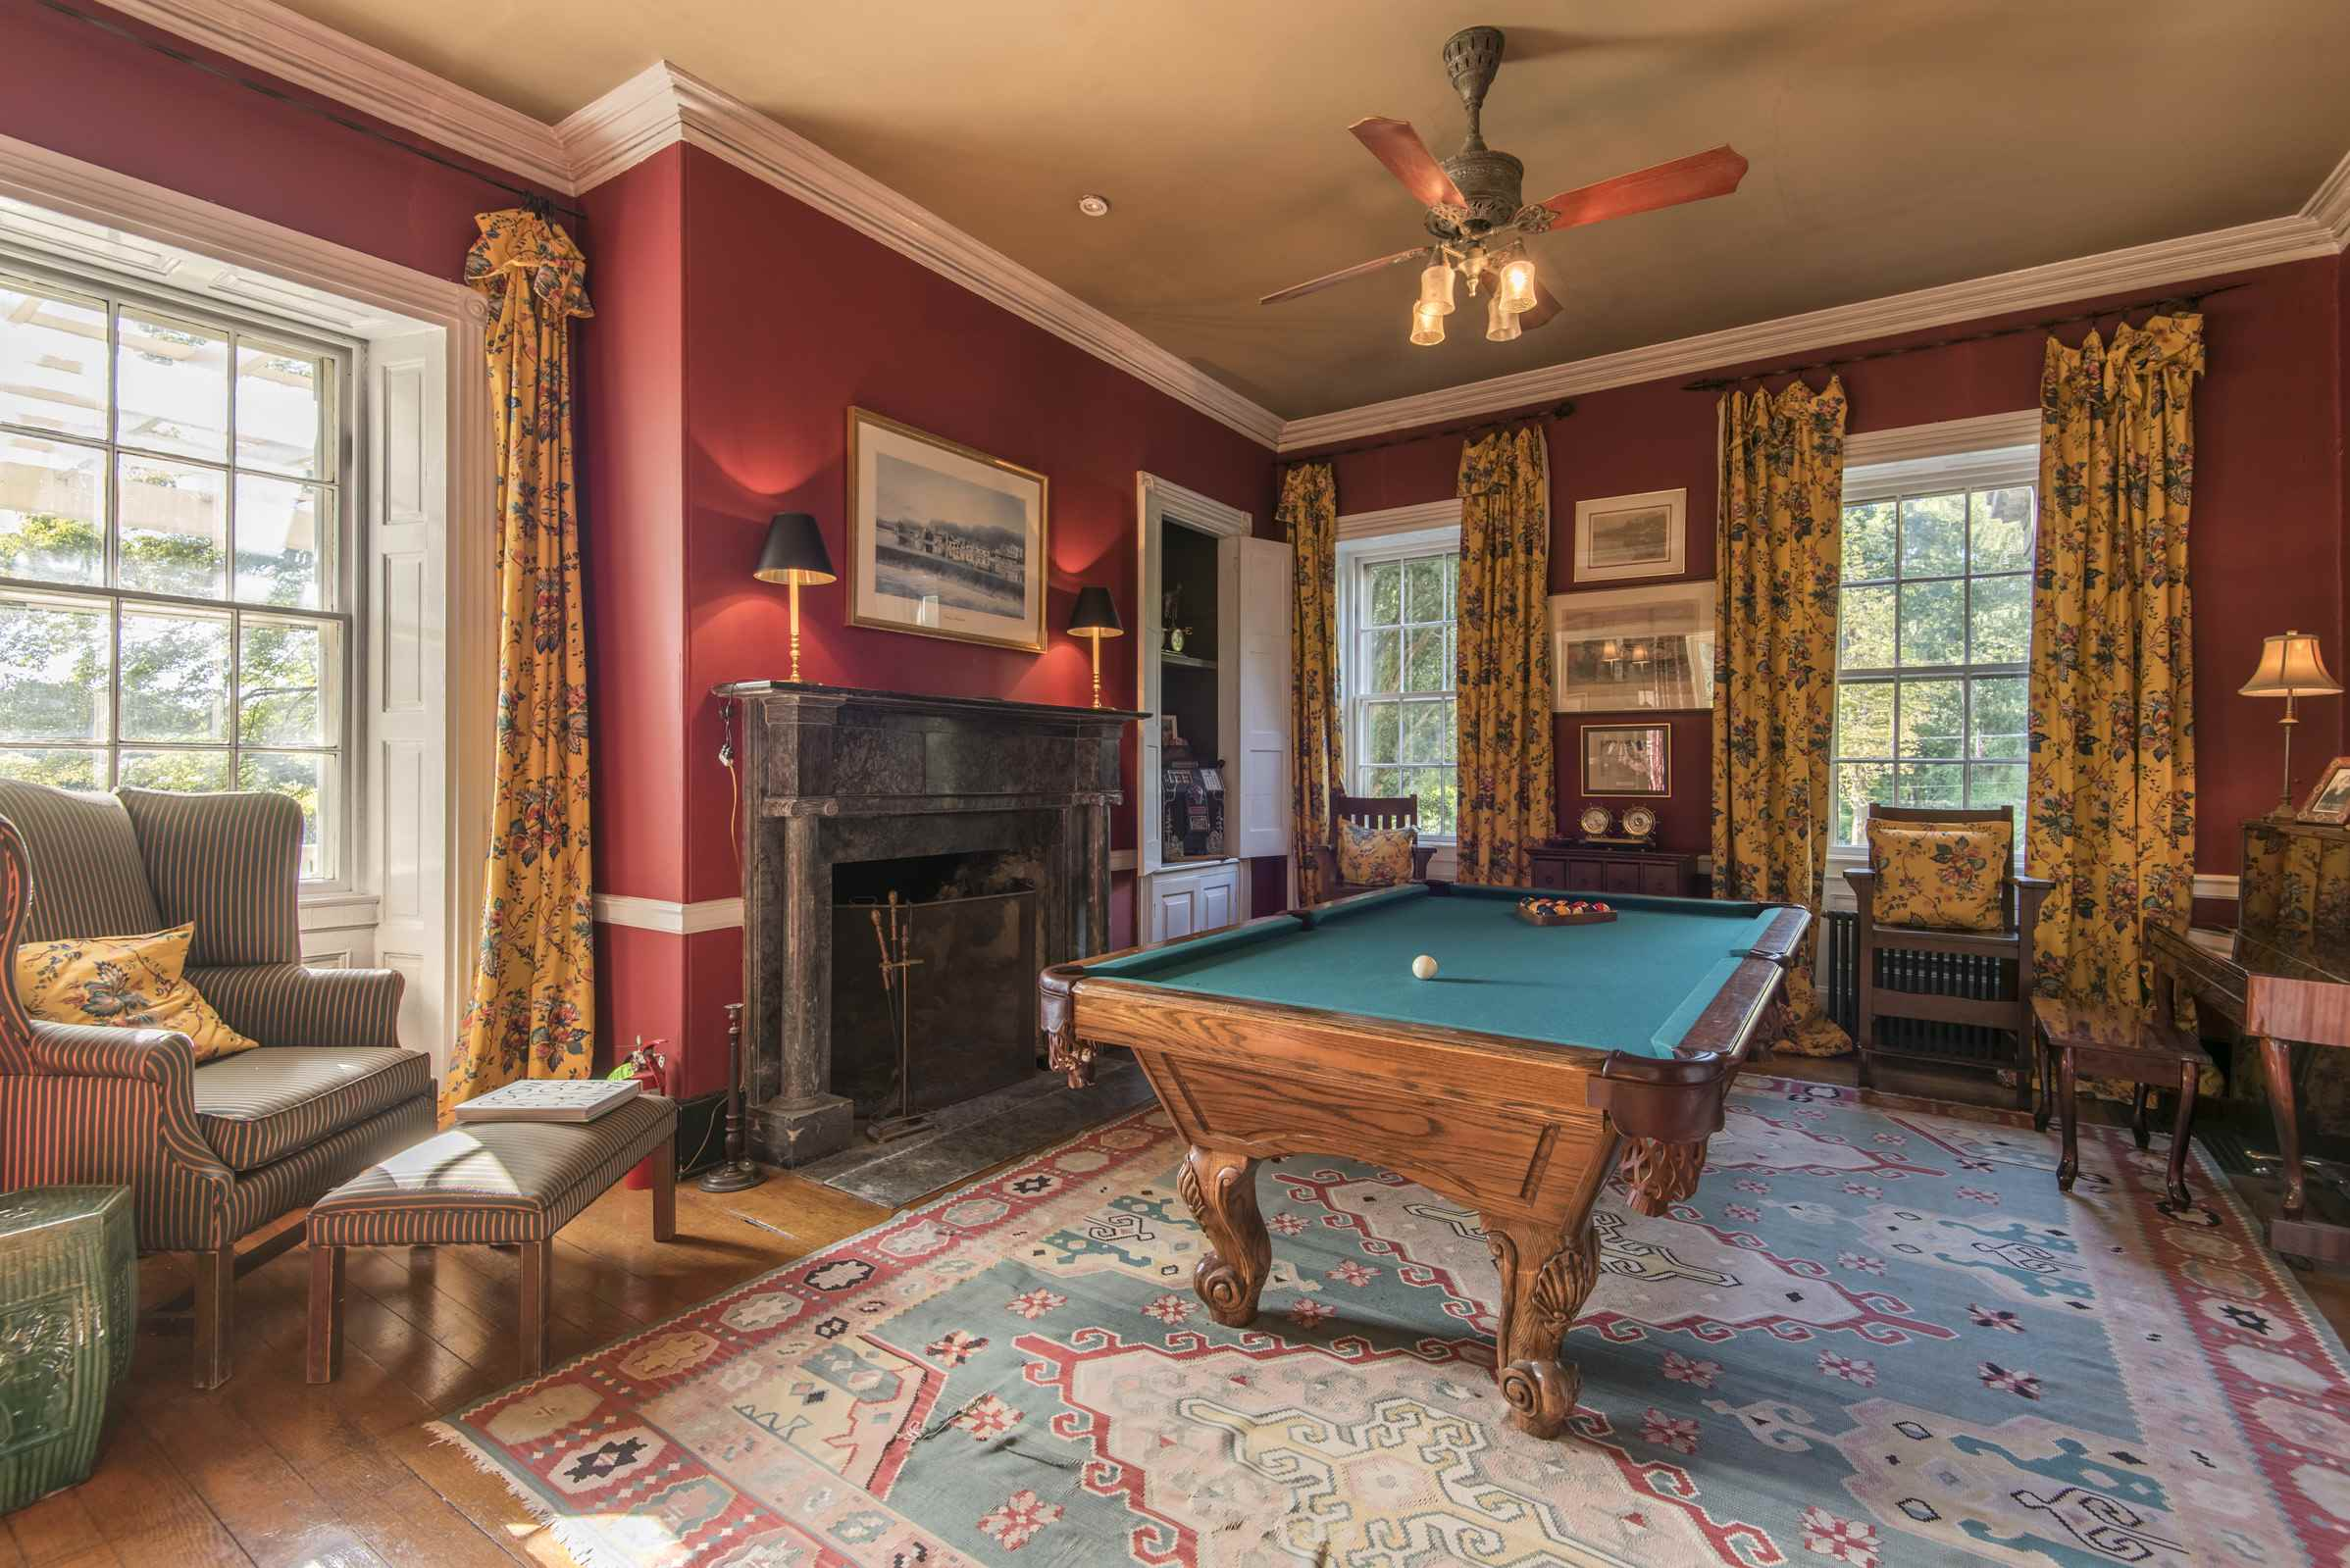 Photo of a billiards room at Grace Winery